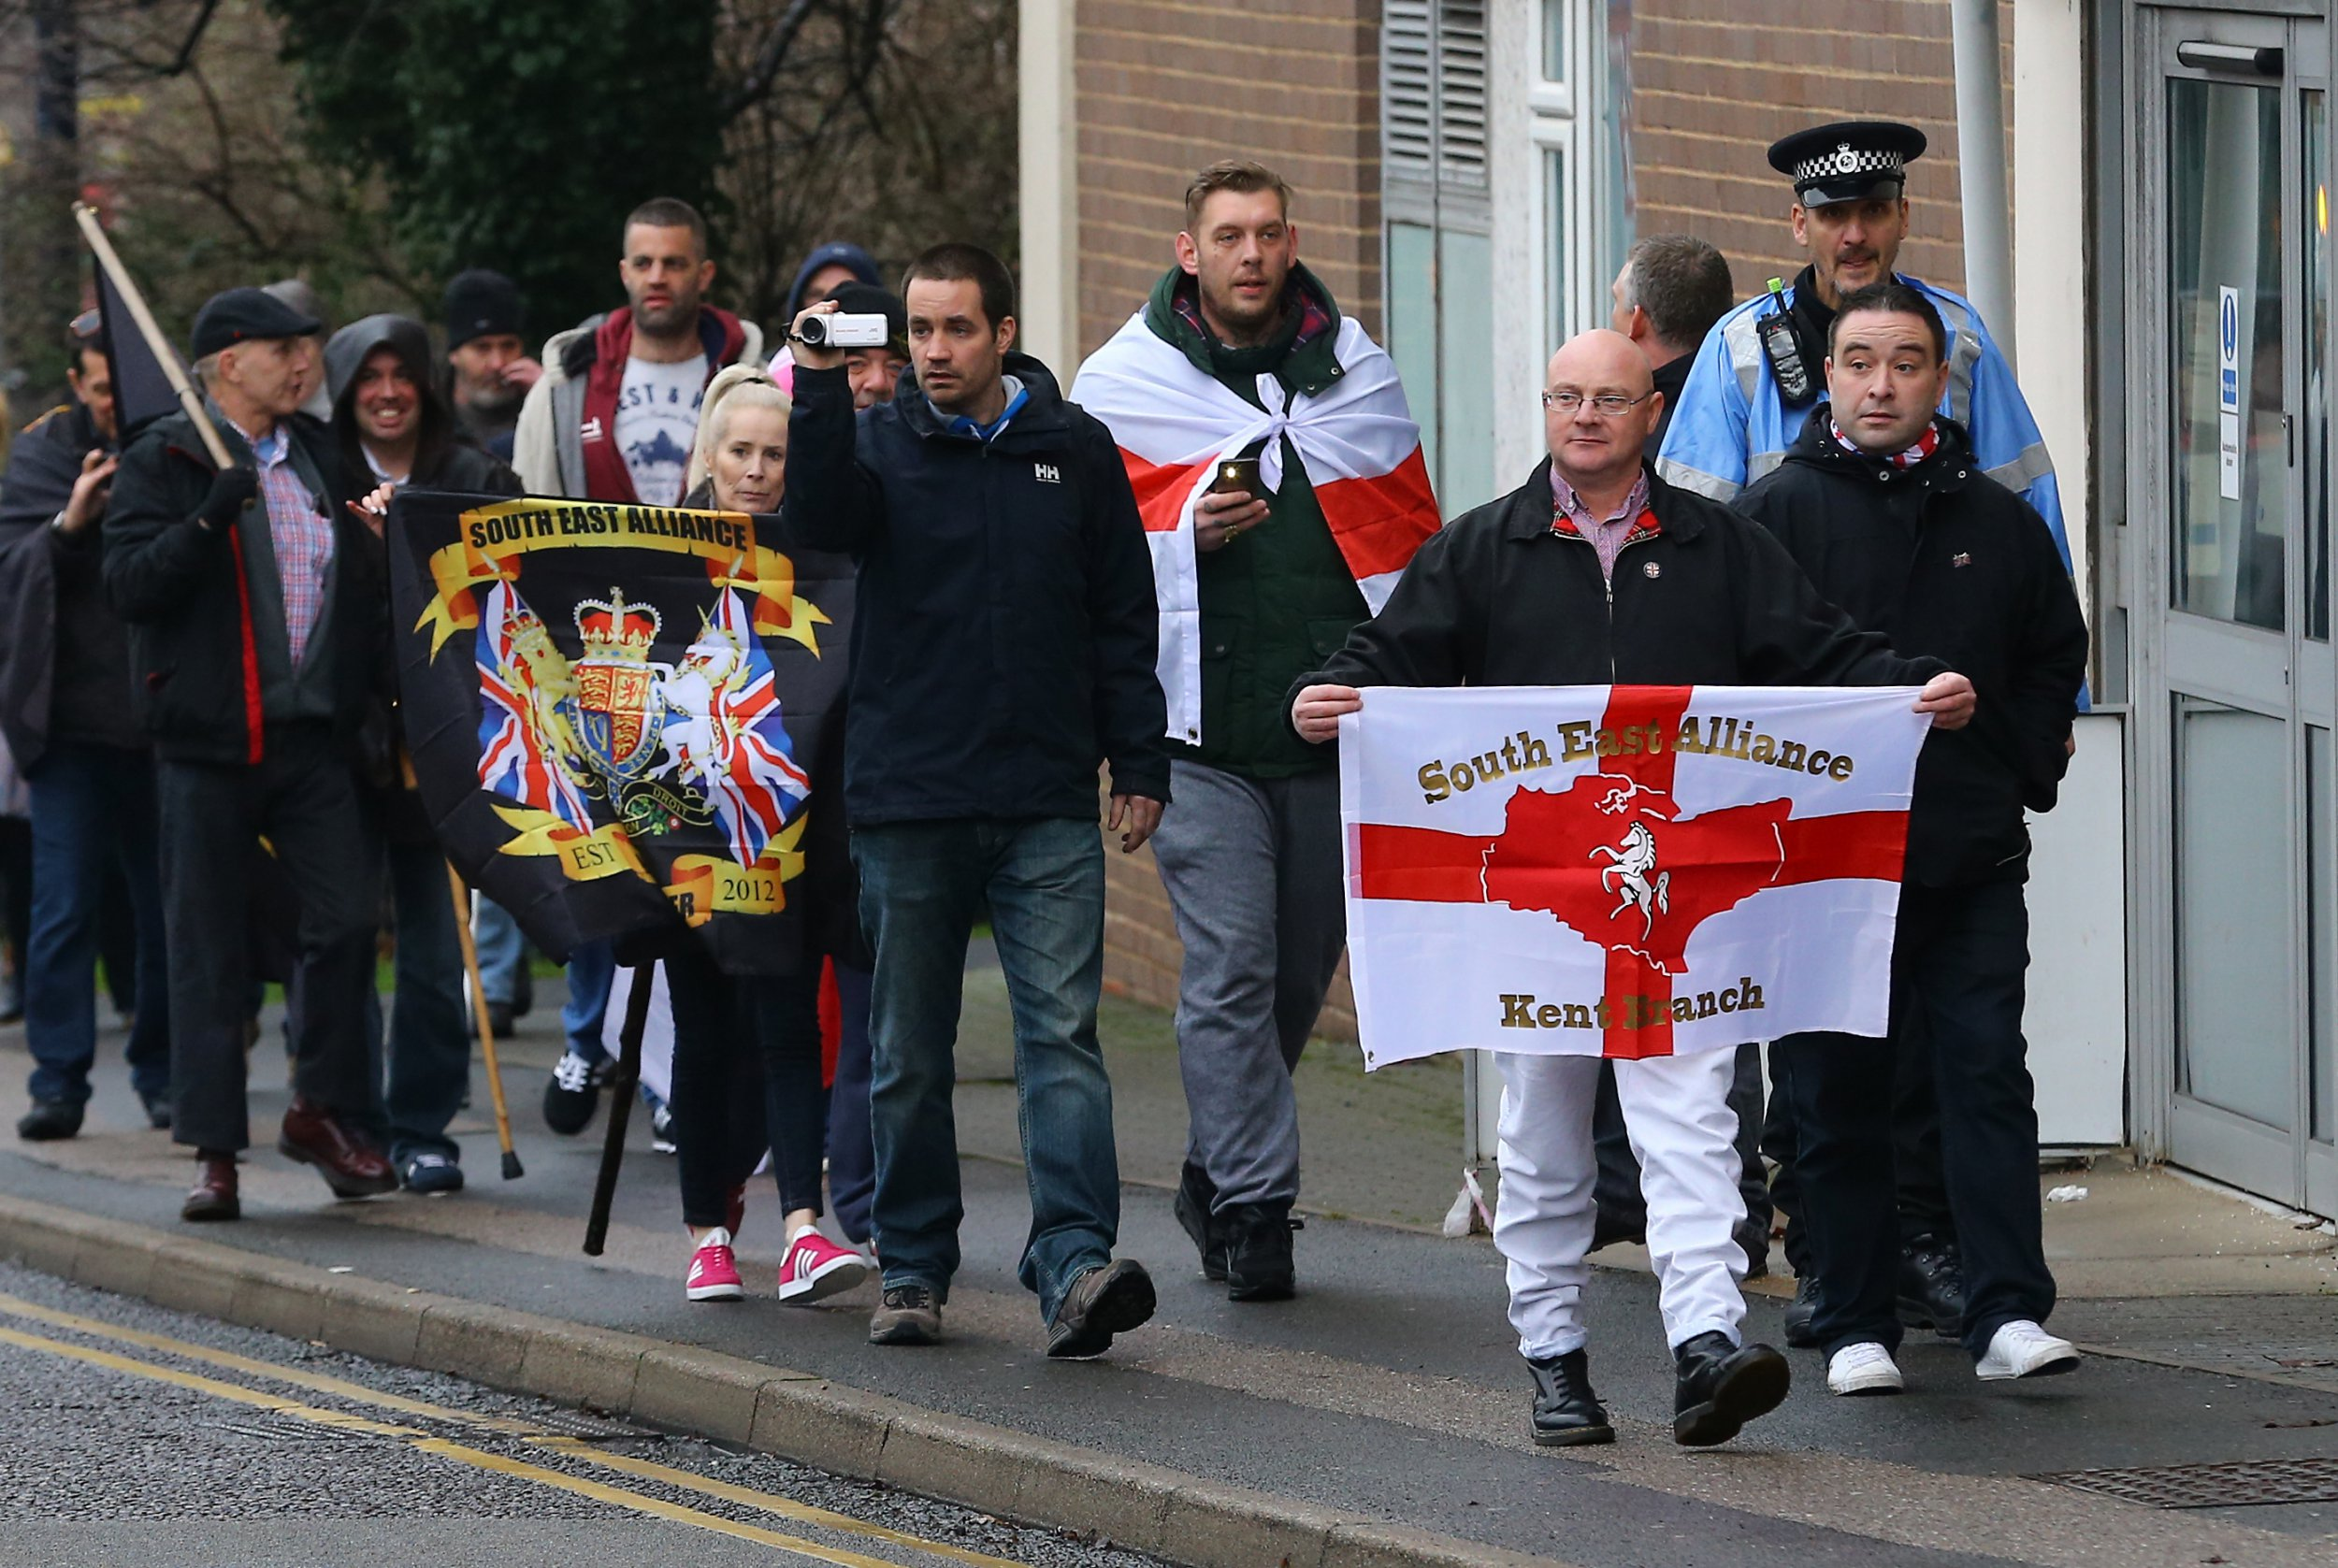 Anti-fascists donate £10 to mosque for every Britain First protester in their town